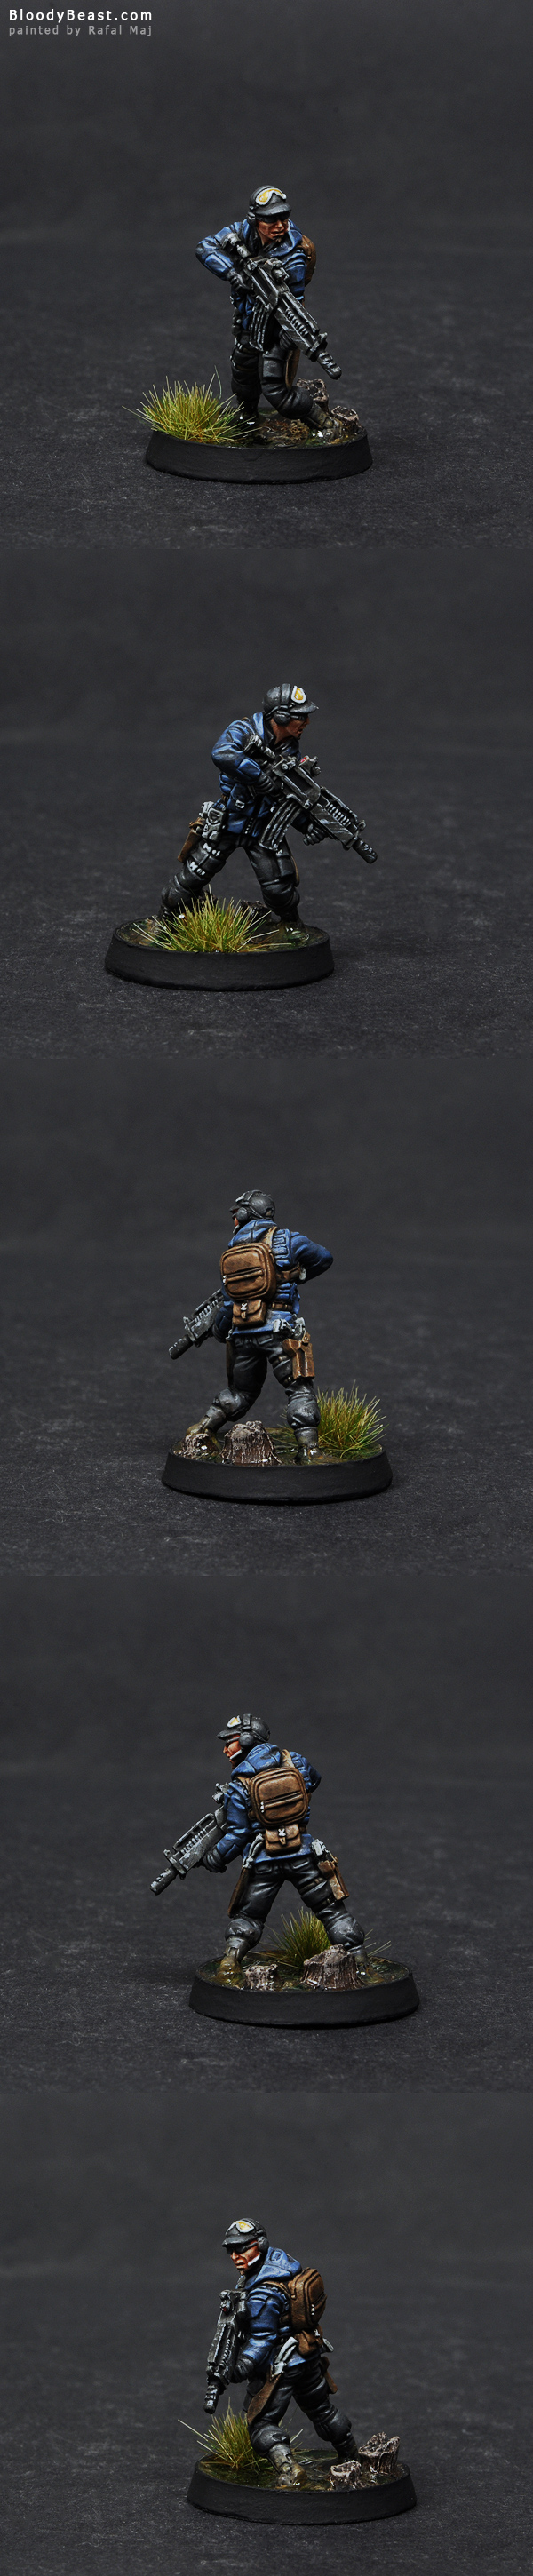 Ariadna Chasseurs Rifle painted by Rafal Maj (BloodyBeast.com)